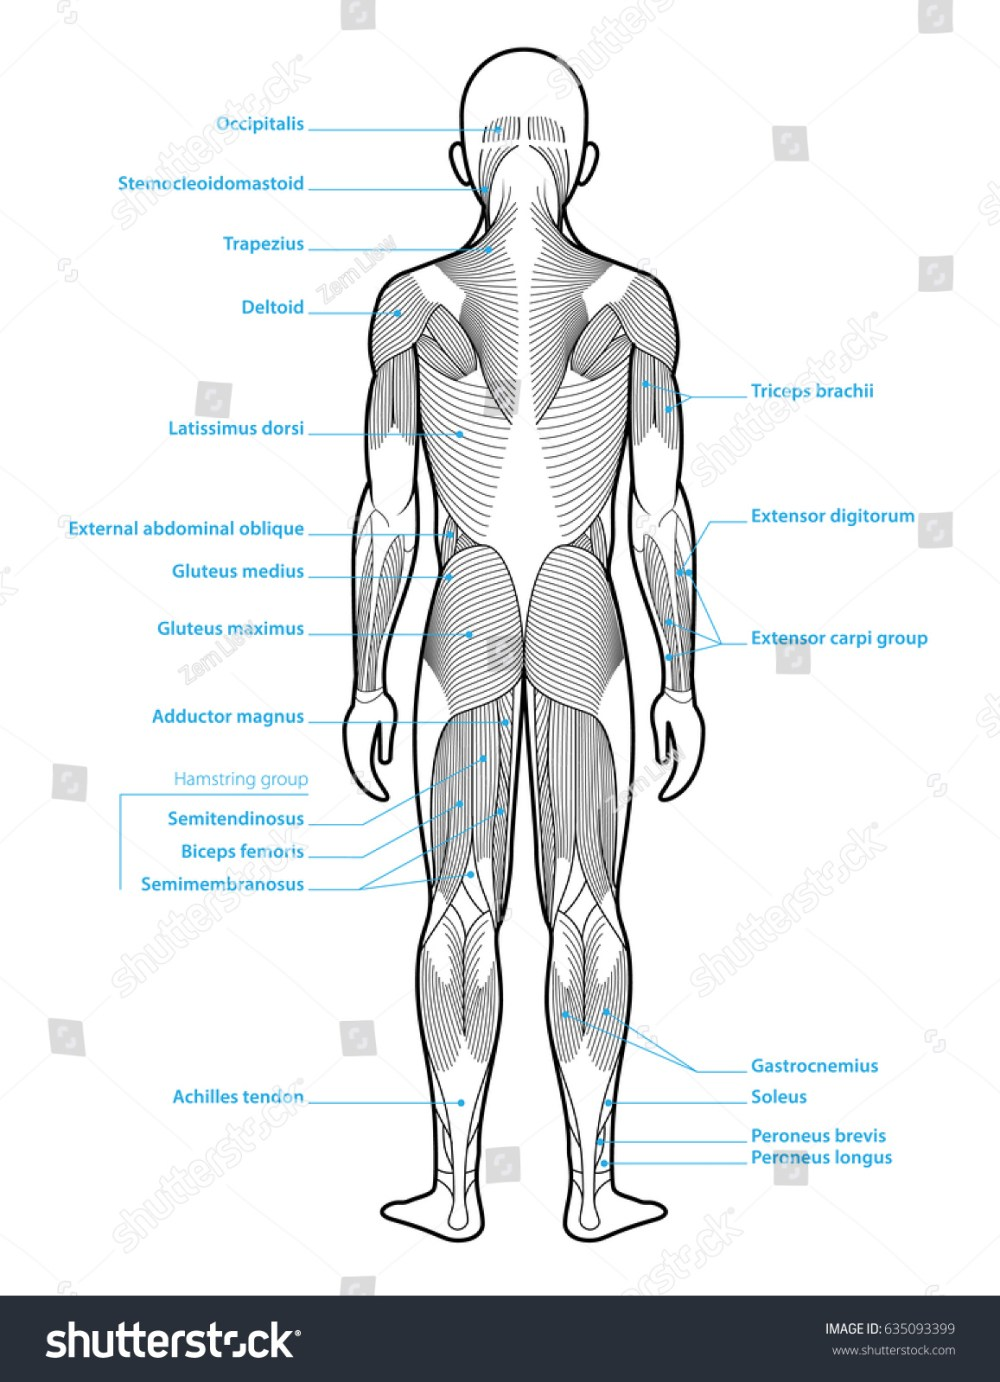 medium resolution of stylized anatomy diagram showing major muscle groups shown from the back posterior view with labels